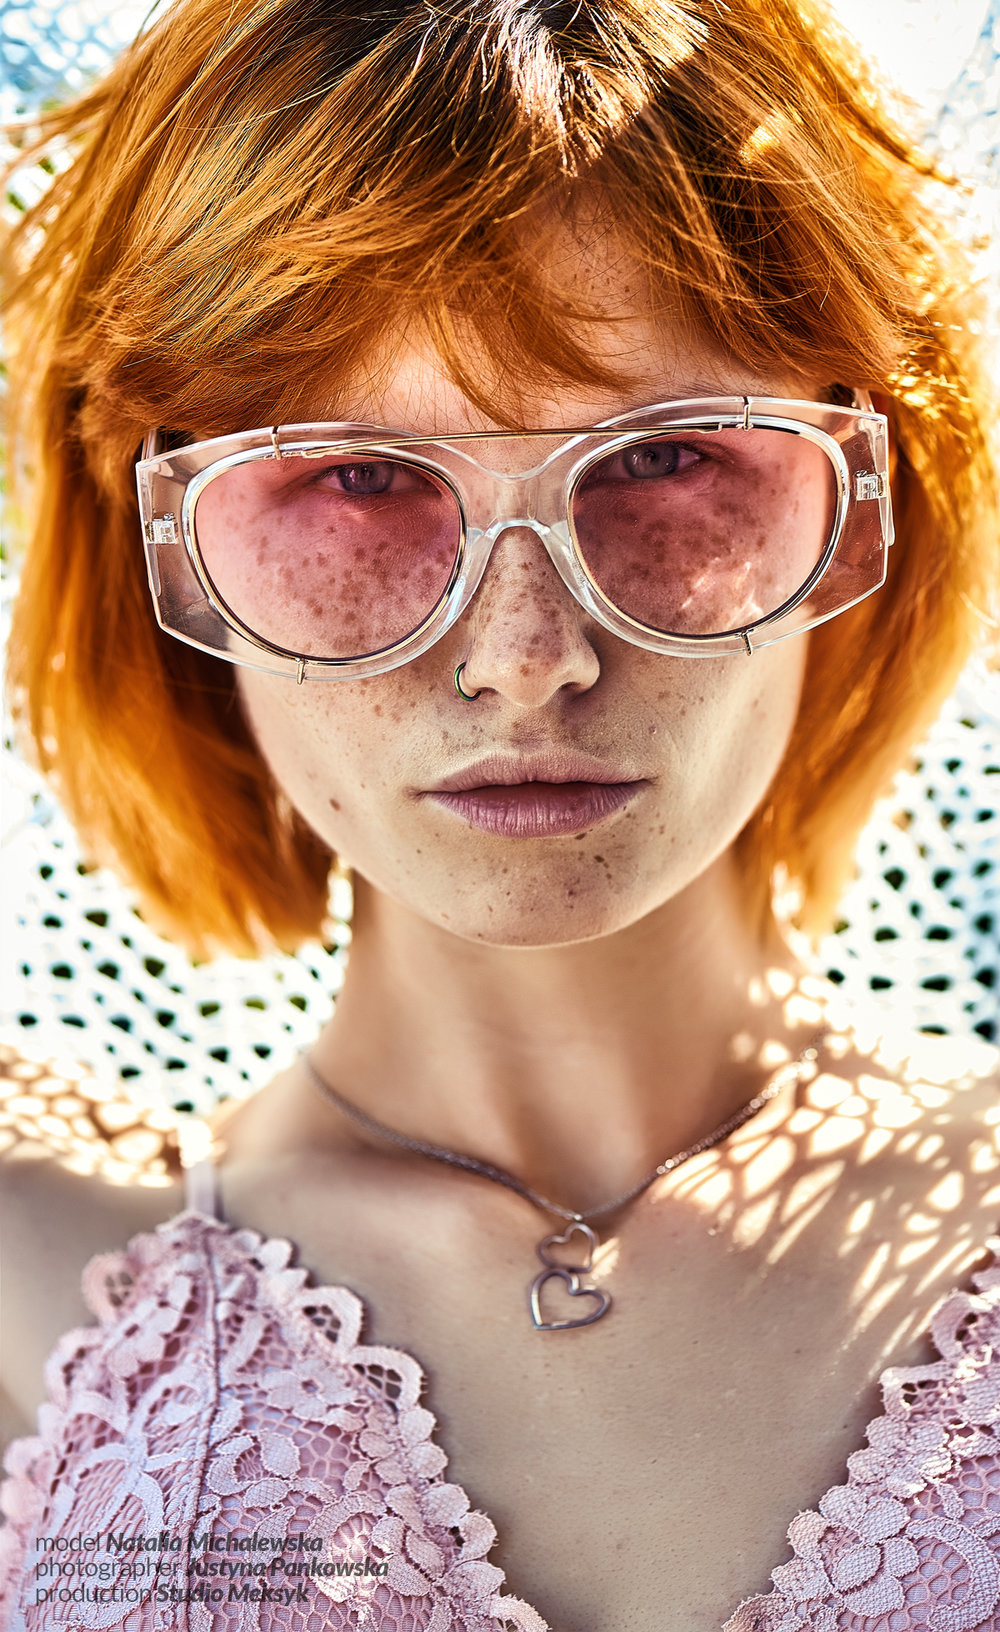 Natalia Michalewska, beauty, girl, freckles, natural, portrait, summer, glasses, pro, retouch, photography, D4s, nikkor 105 macro, Justyna Pankowska, Studio Meksyk 1.jpg